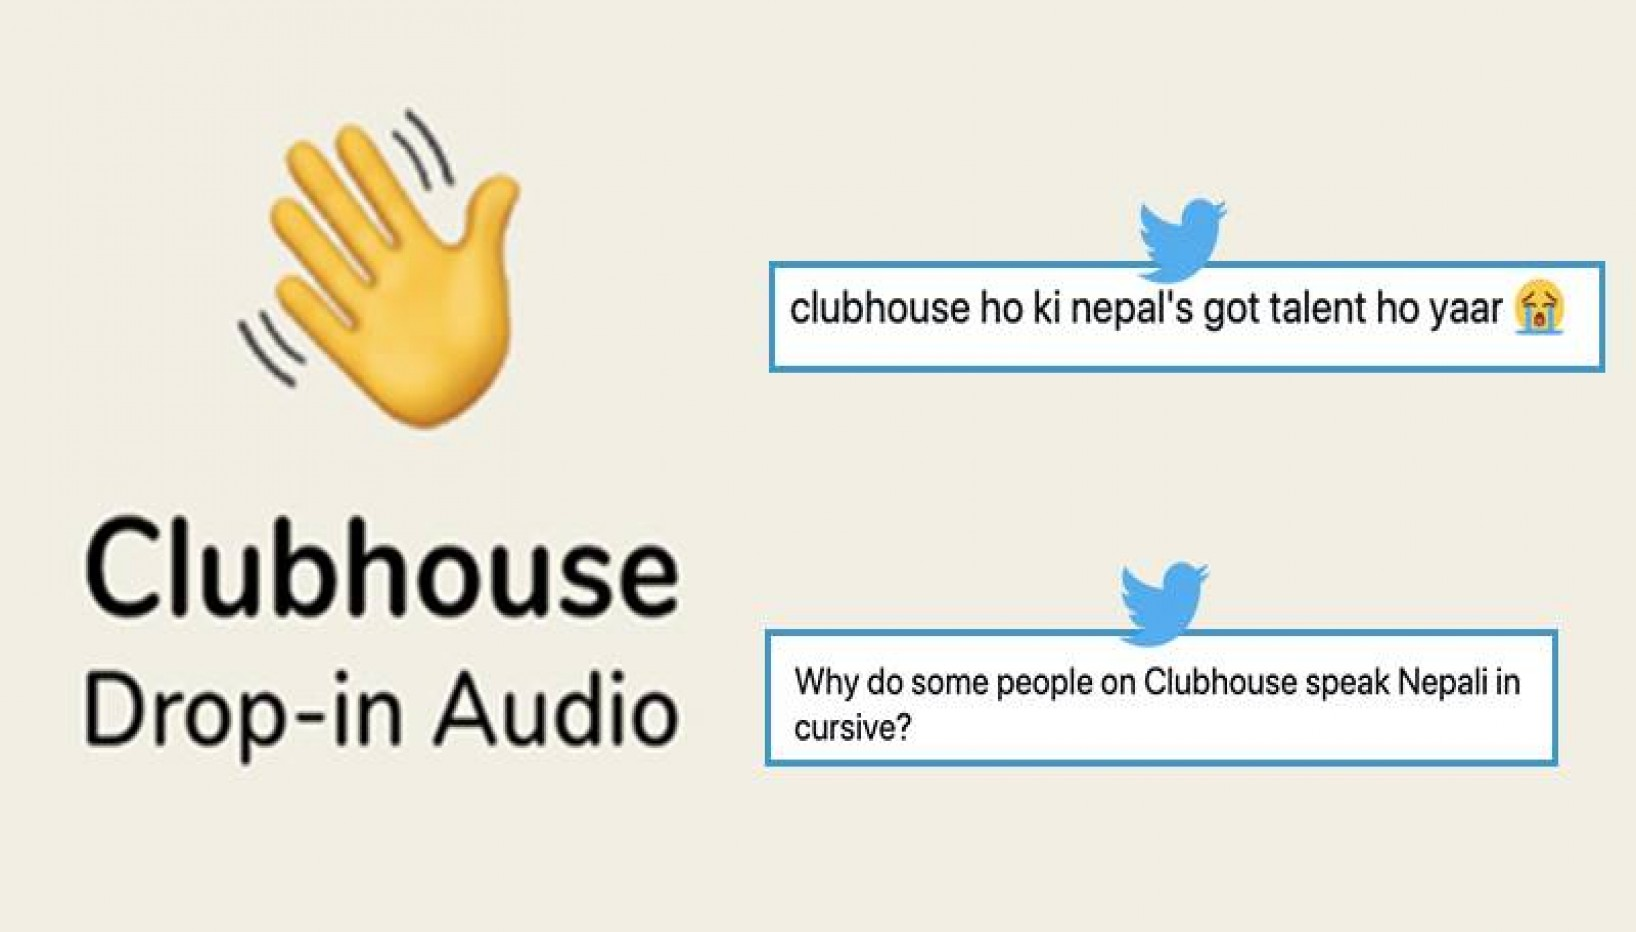 How Is The Clubhouse Scene In Nepal? Here Are 15 Opiniated Tweets To Satiate Your Curiosity